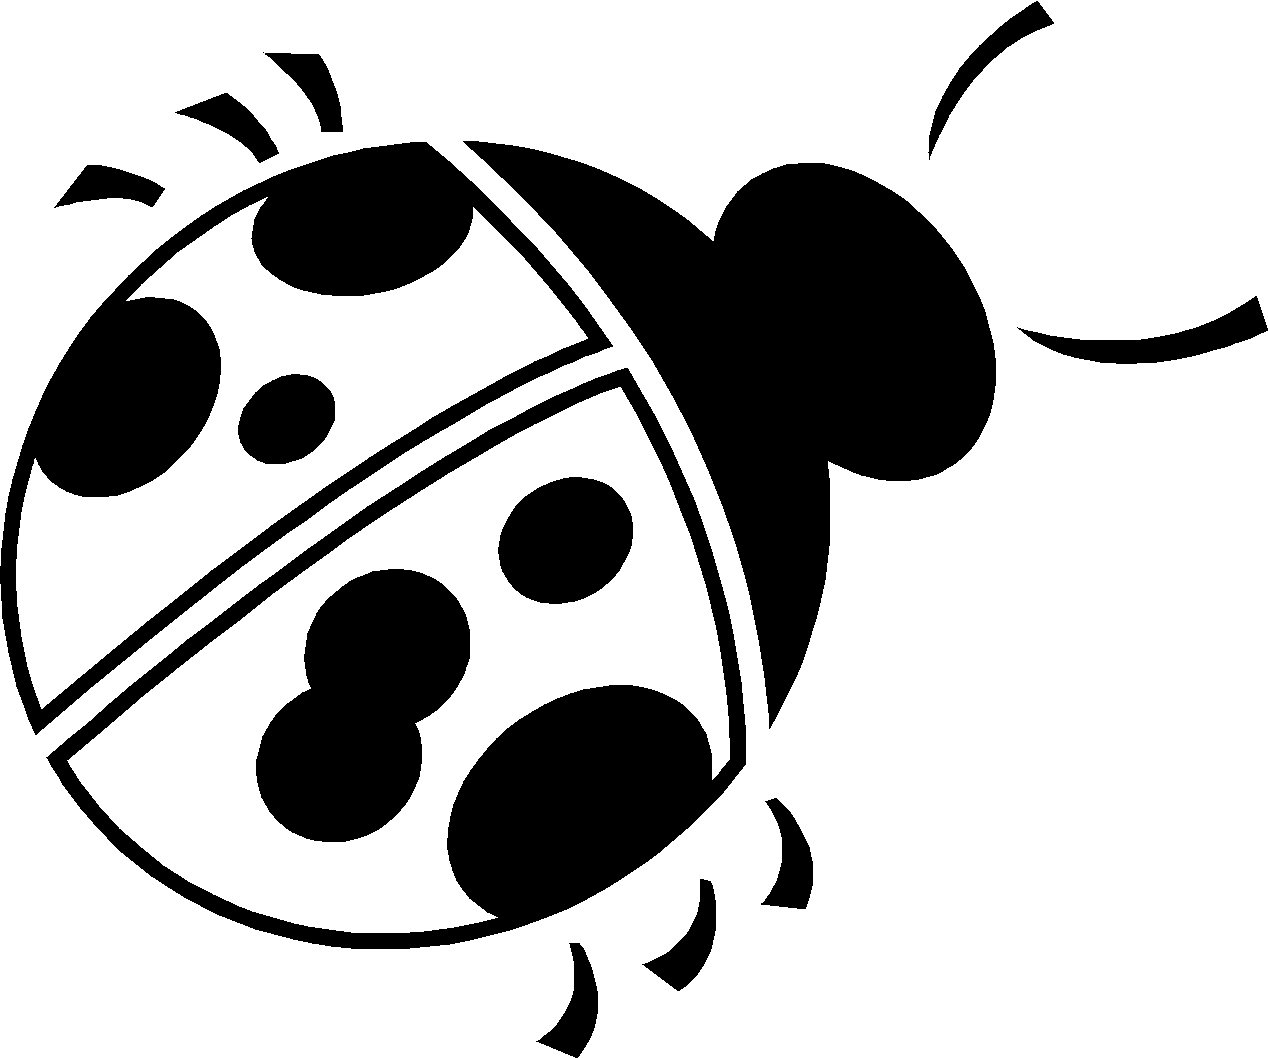 ladybug vinyl decal sticker